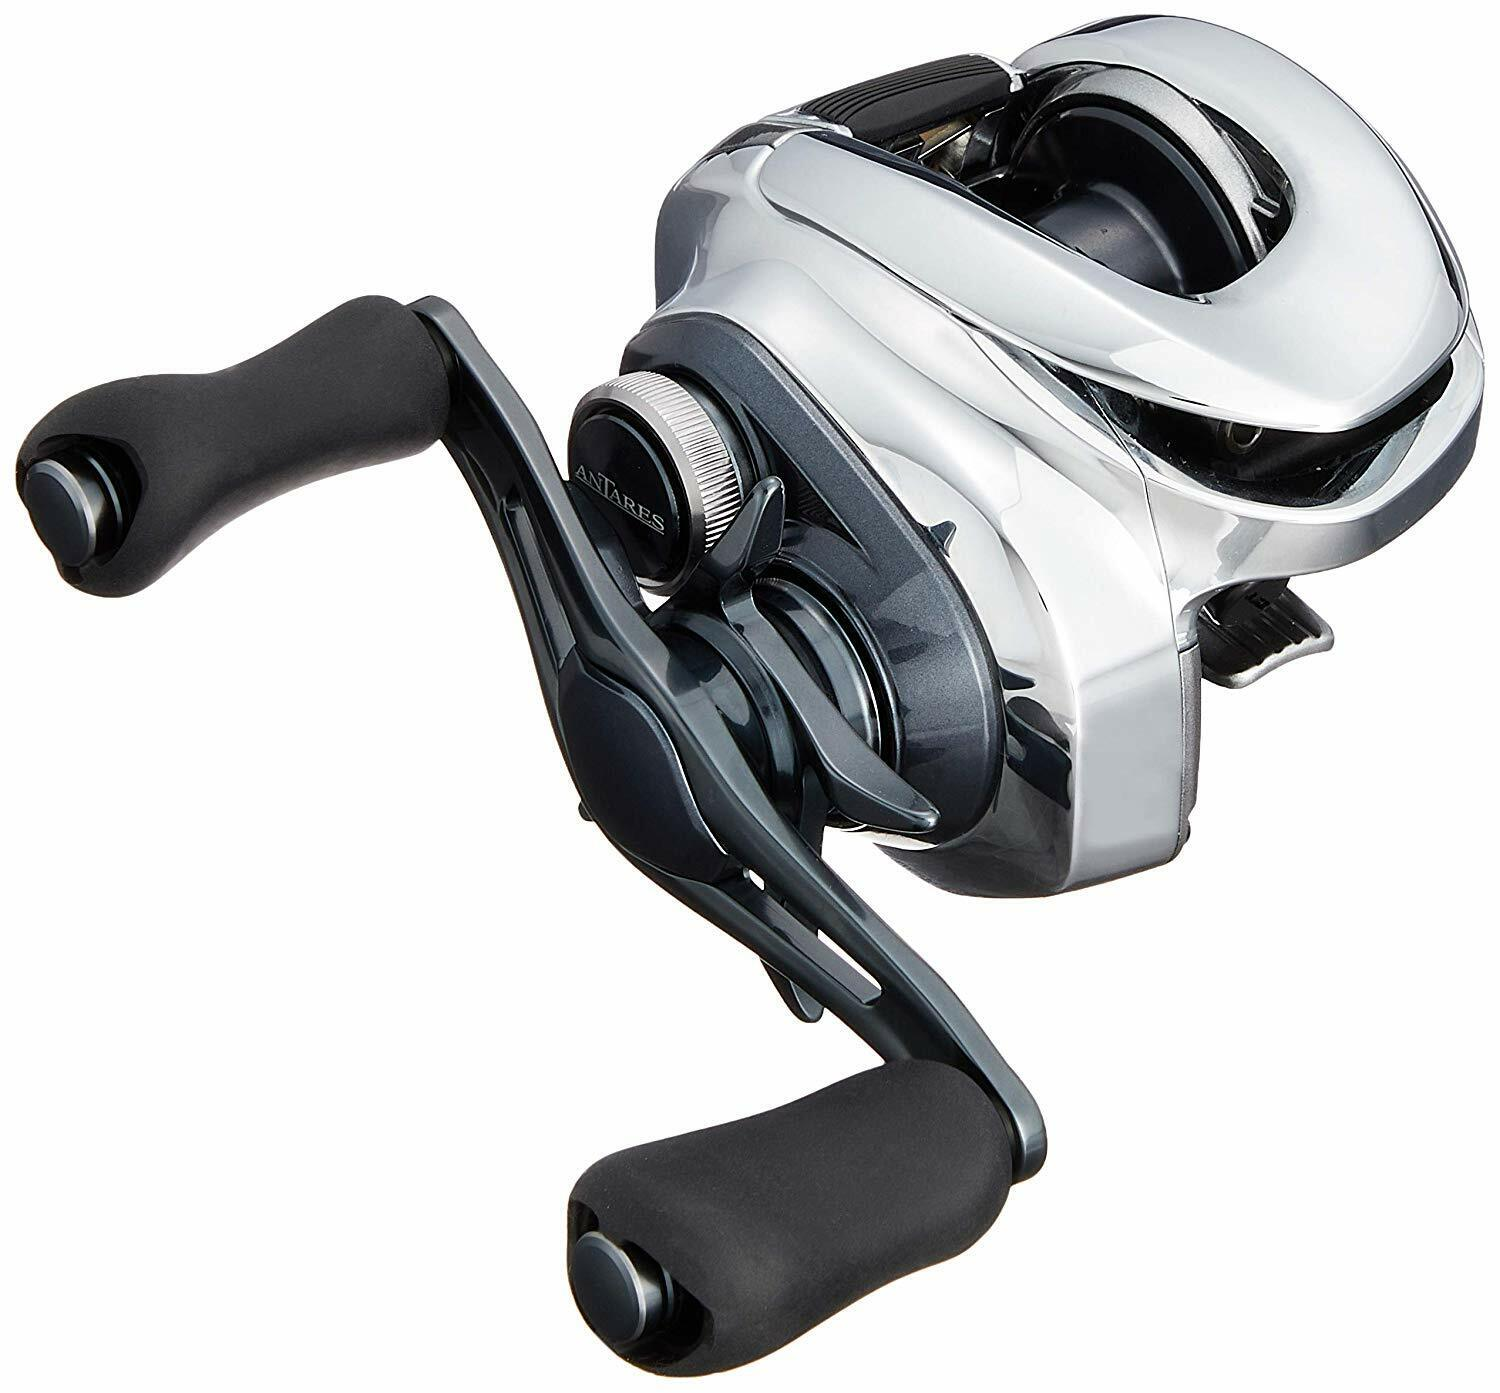 Shihommeo 19 antares hg right-handed 7.4  1 casting reel cog bass f s from japan